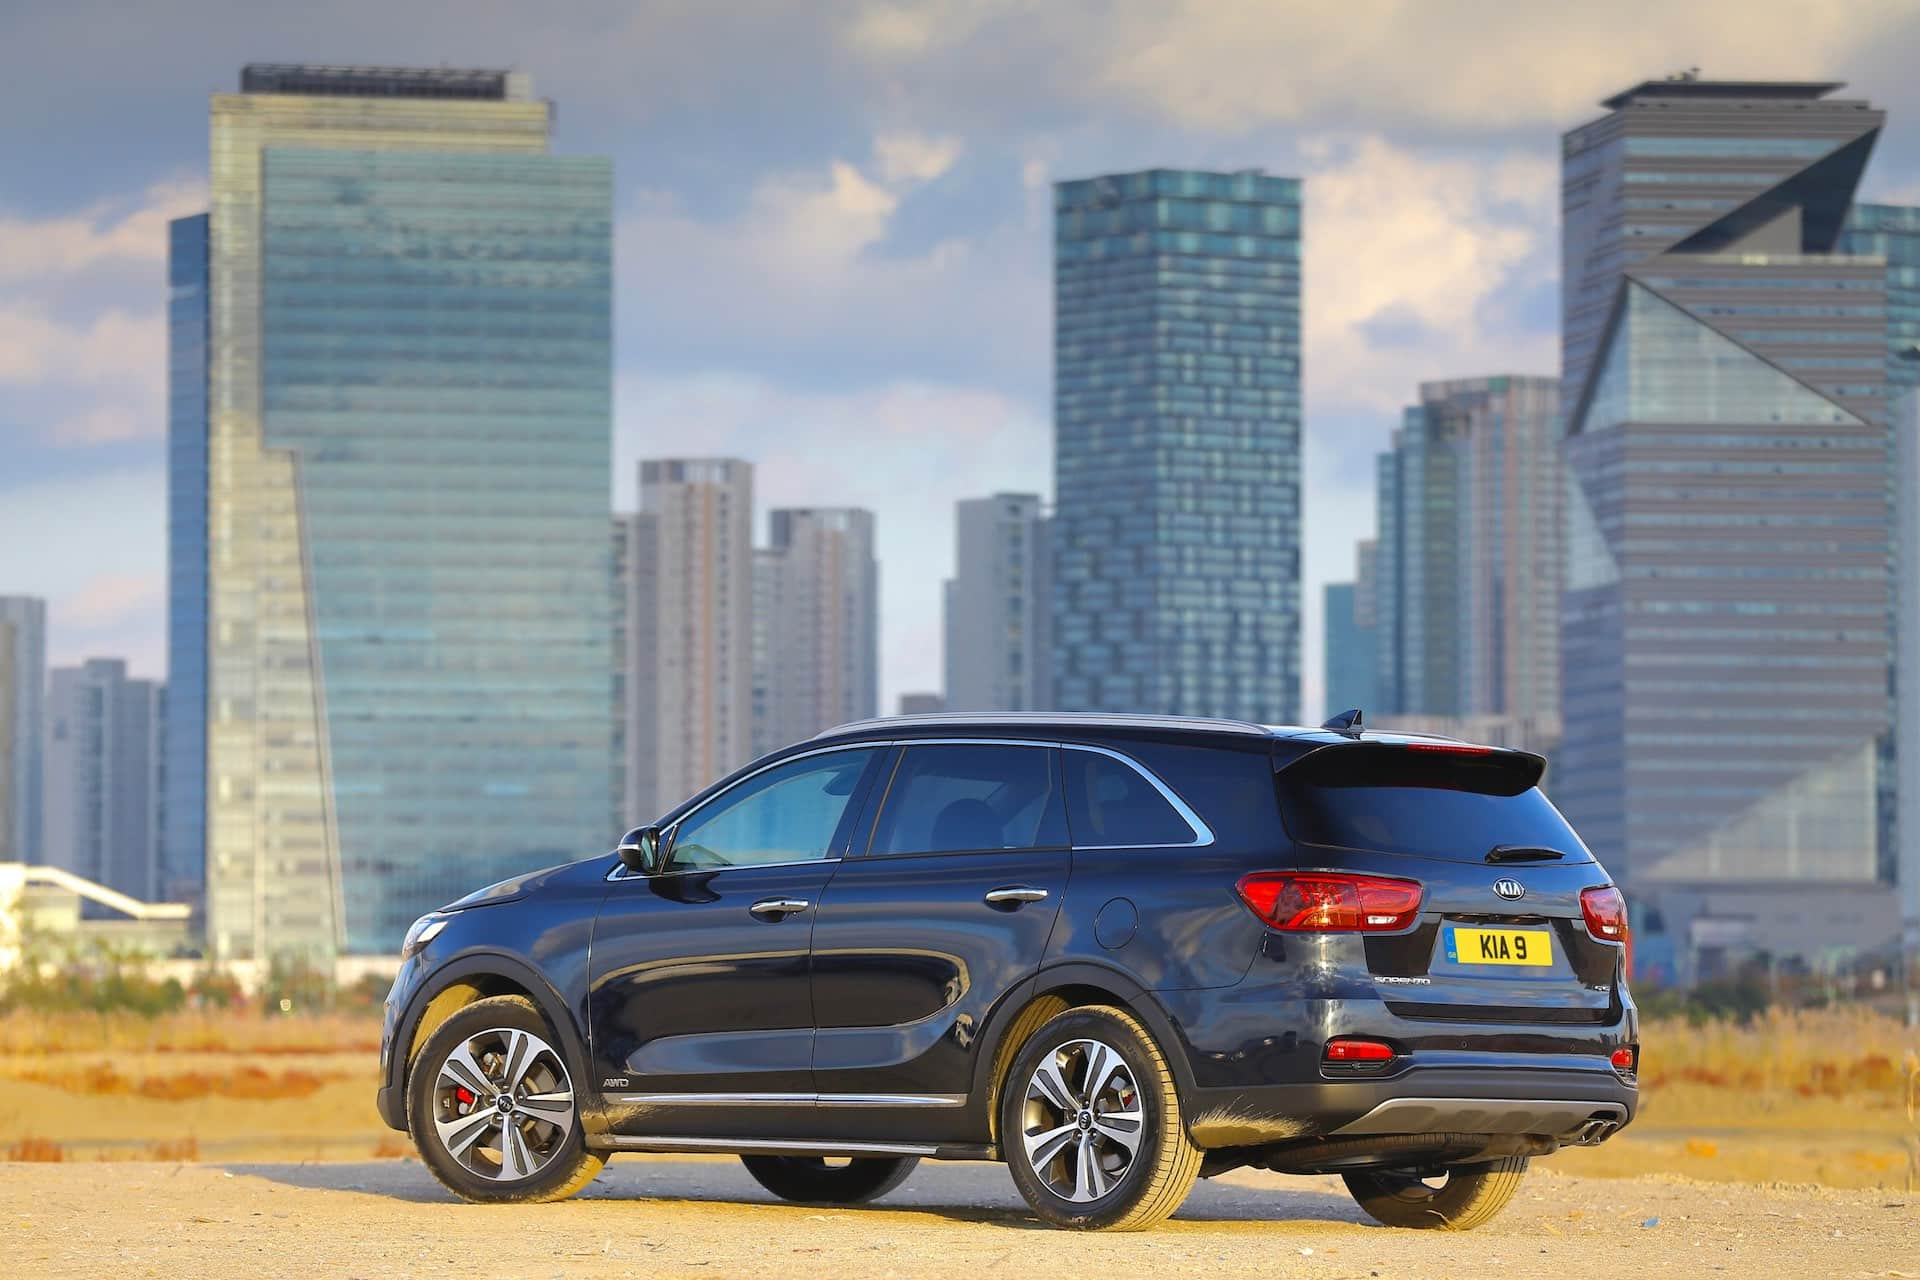 Kia Sorento GT-Line rear view (The Car Expert 2018)